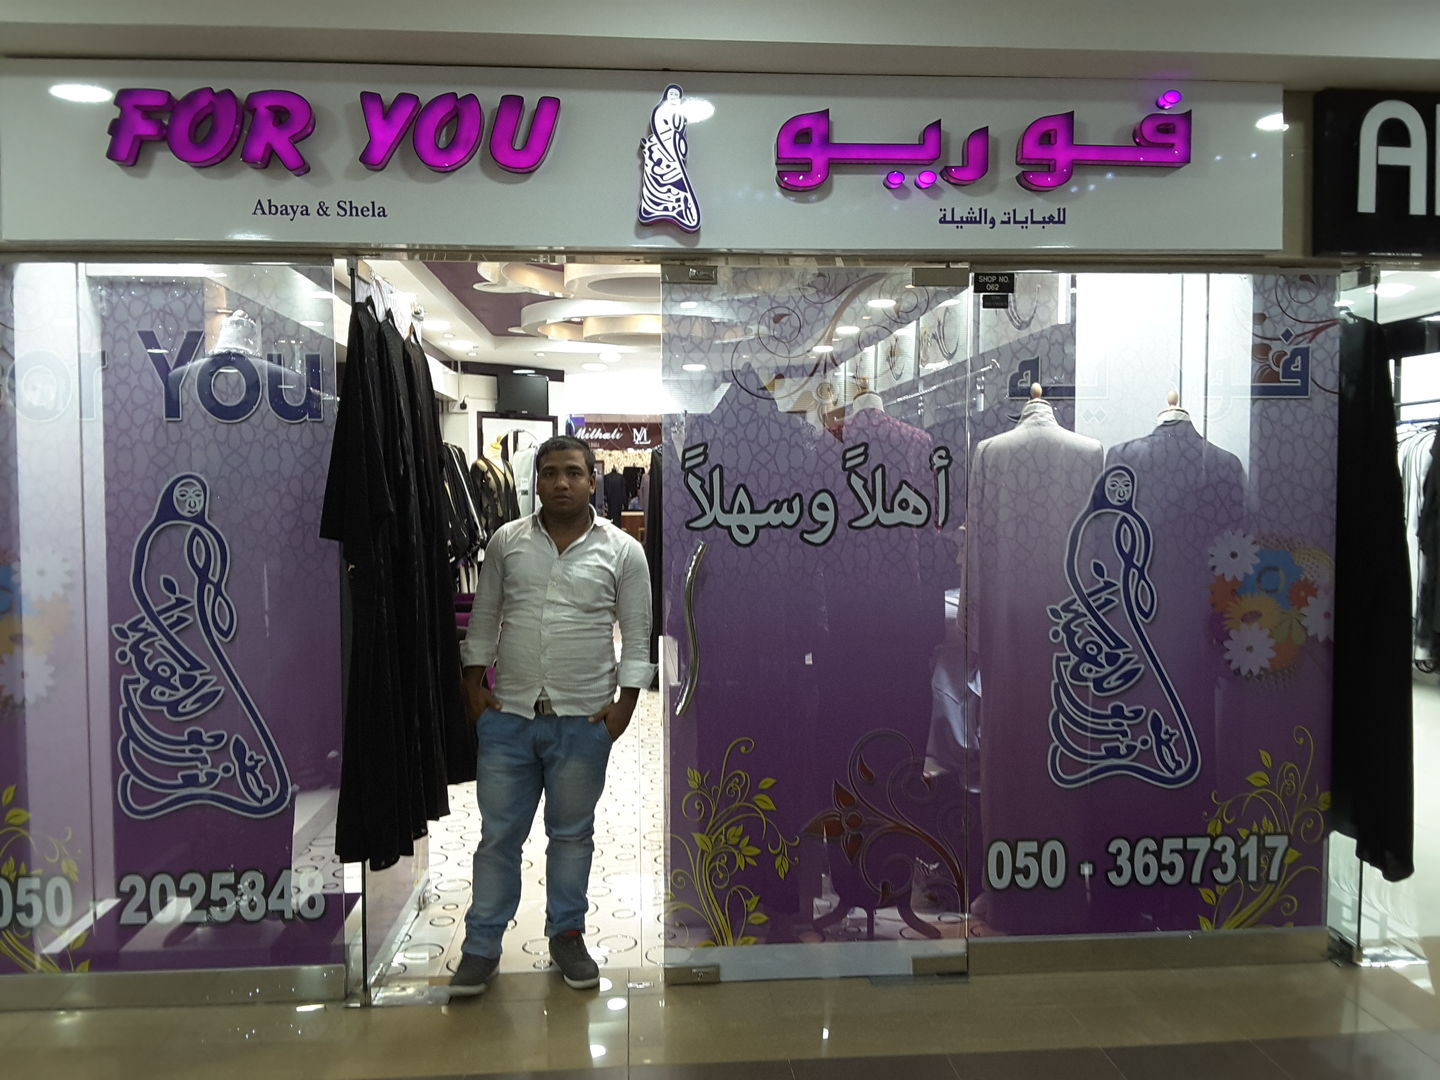 HiDubai-business-for-you-abaya-and-shela-shopping-apparel-mirdif-dubai-4